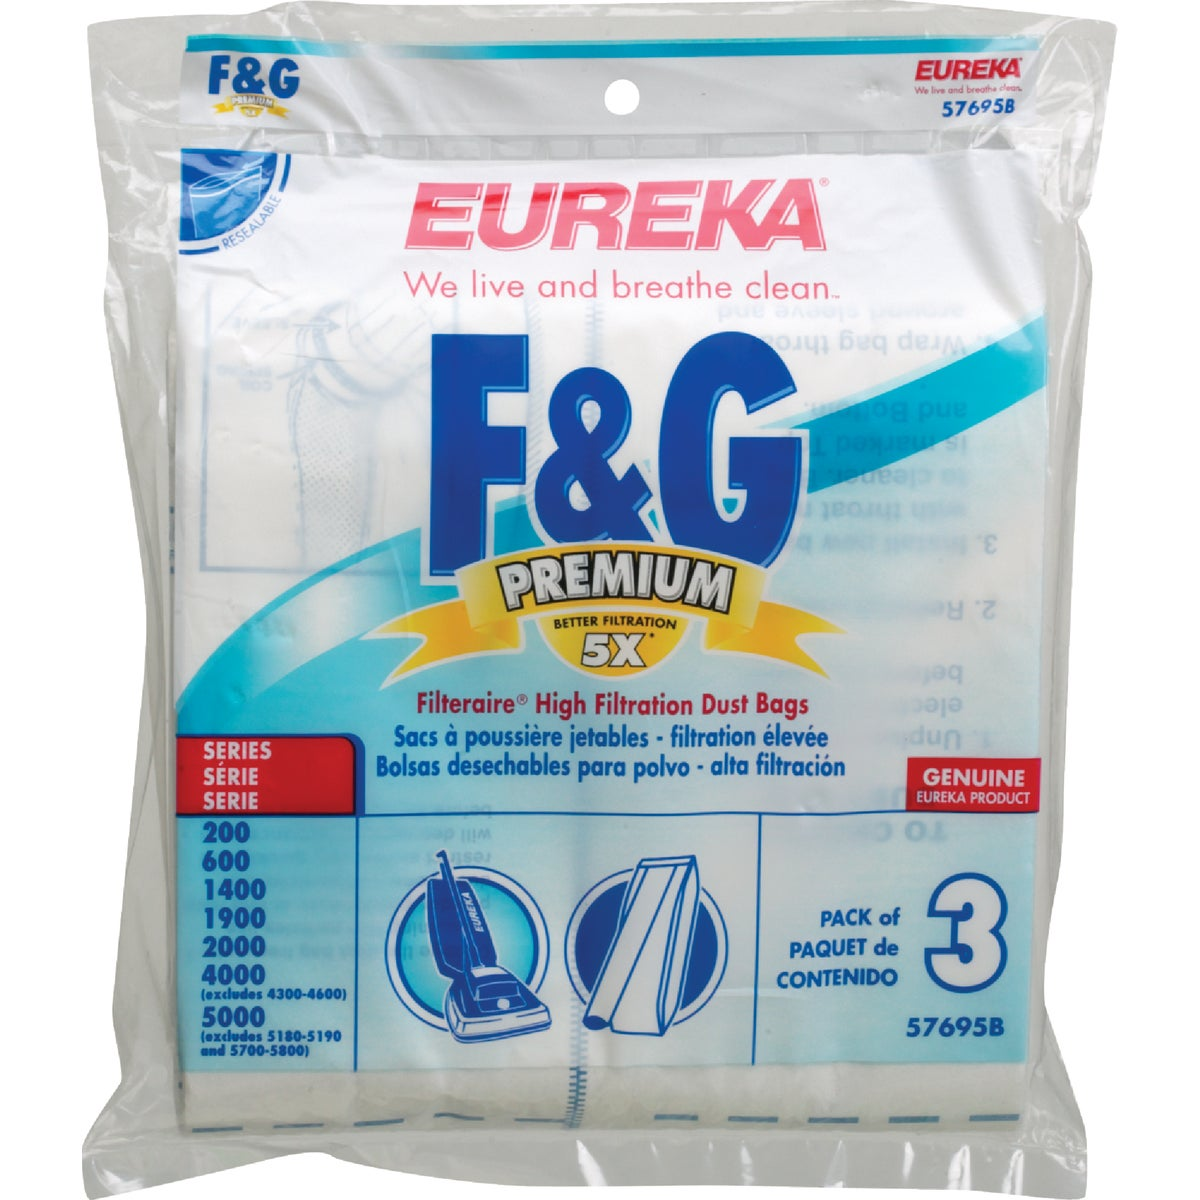 F&G FILTERAIRE VAC BAG - 57695B-6 by Electrolux Home Care